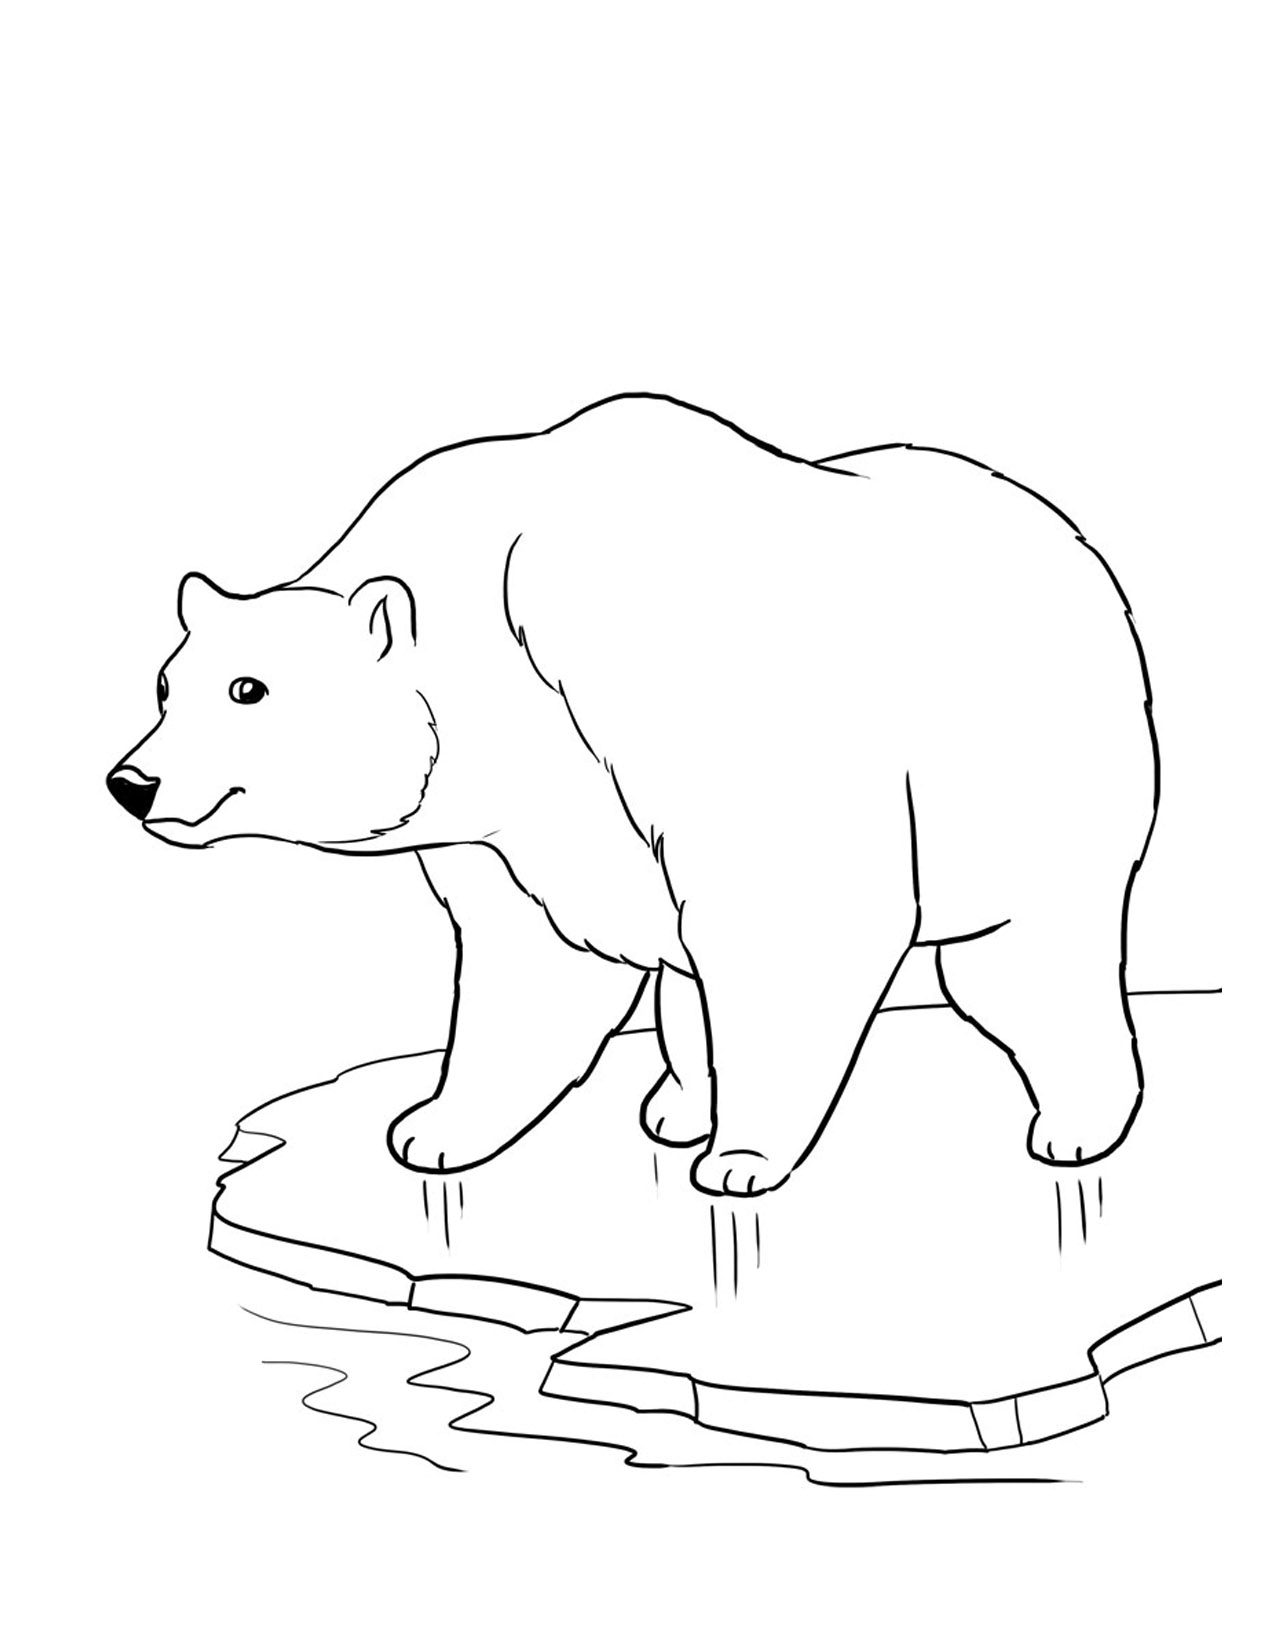 Printable coloring pages koala - Bear Coloring Pages Printable